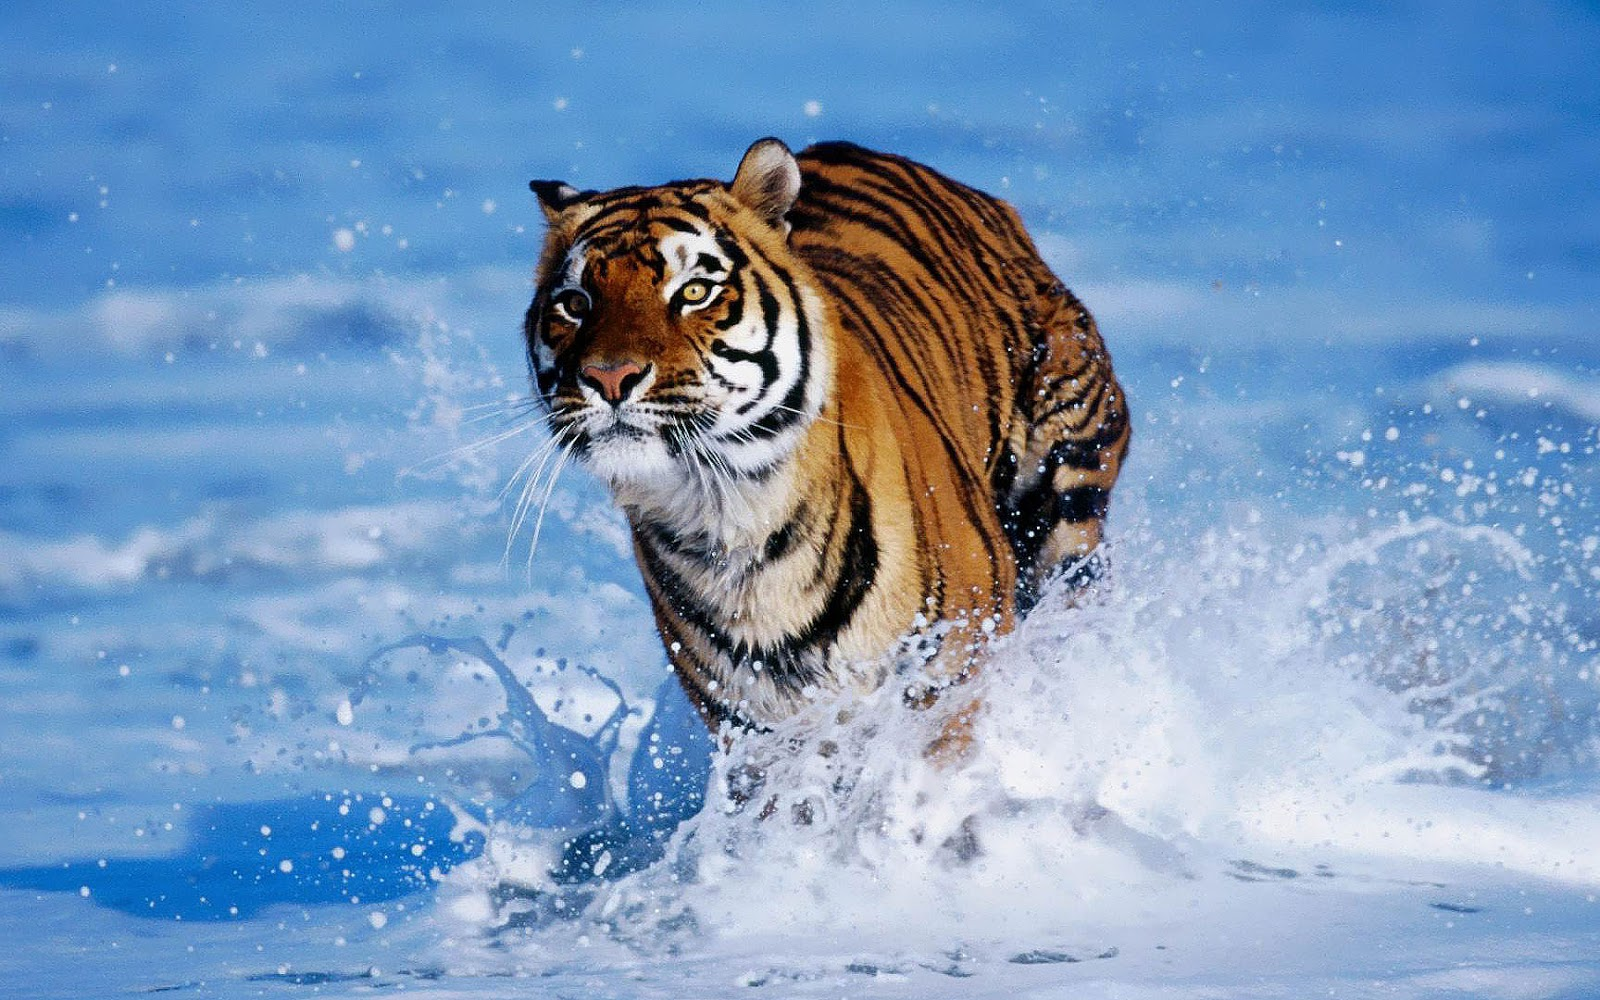 bengal tiger running